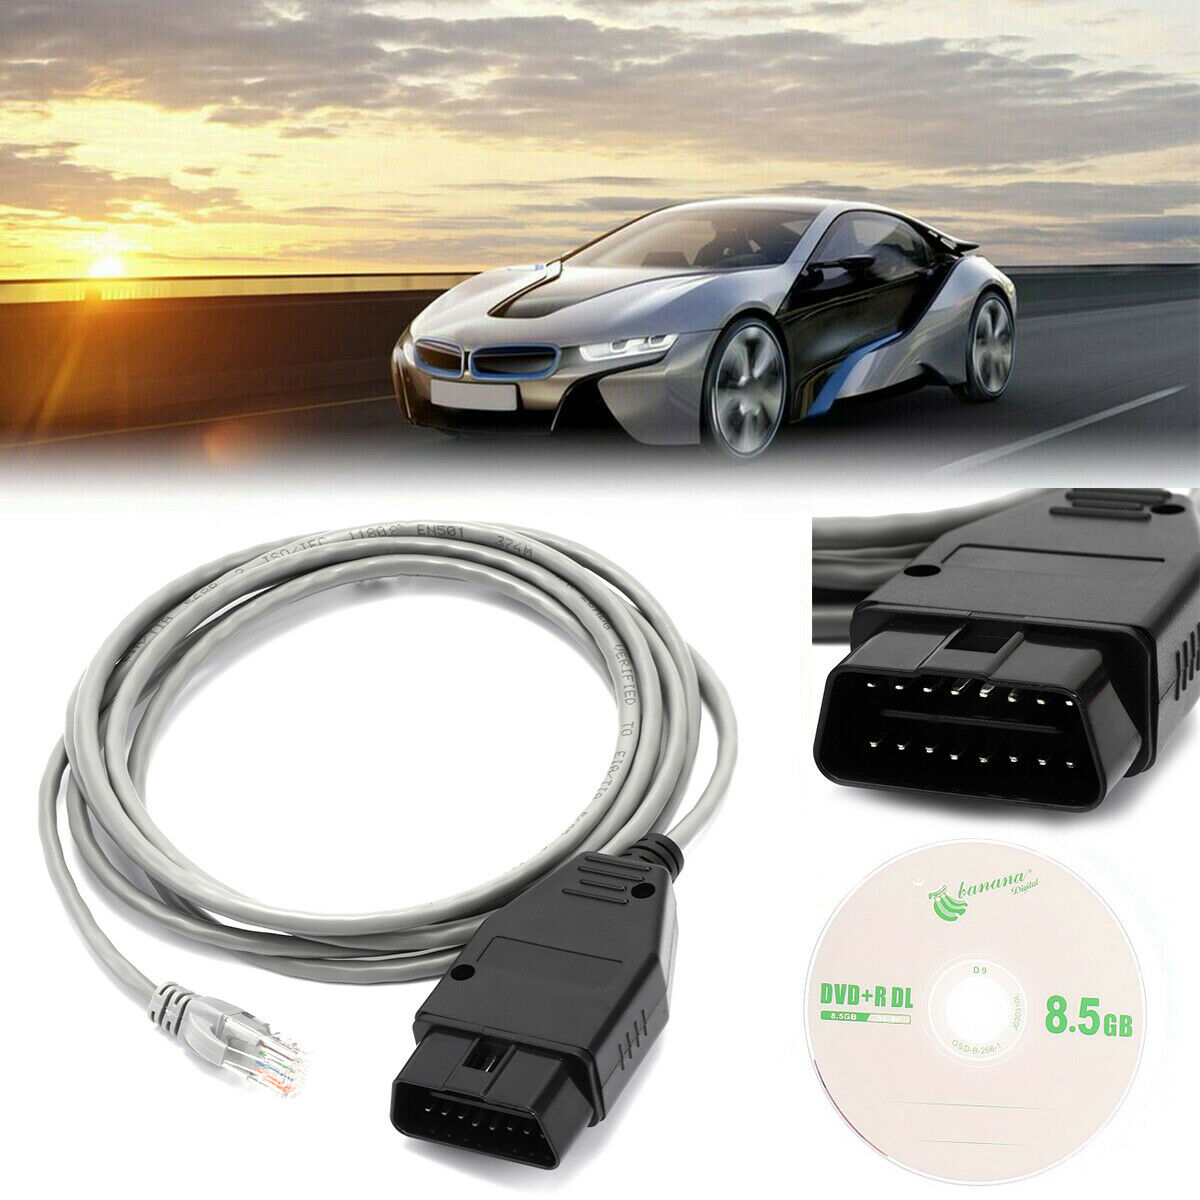 Ethernet to OBD Interface Cable E-SYS ICOM Coding F-Series Fit for BMW PARANNIC ENET Yellow OBDII-RJ45